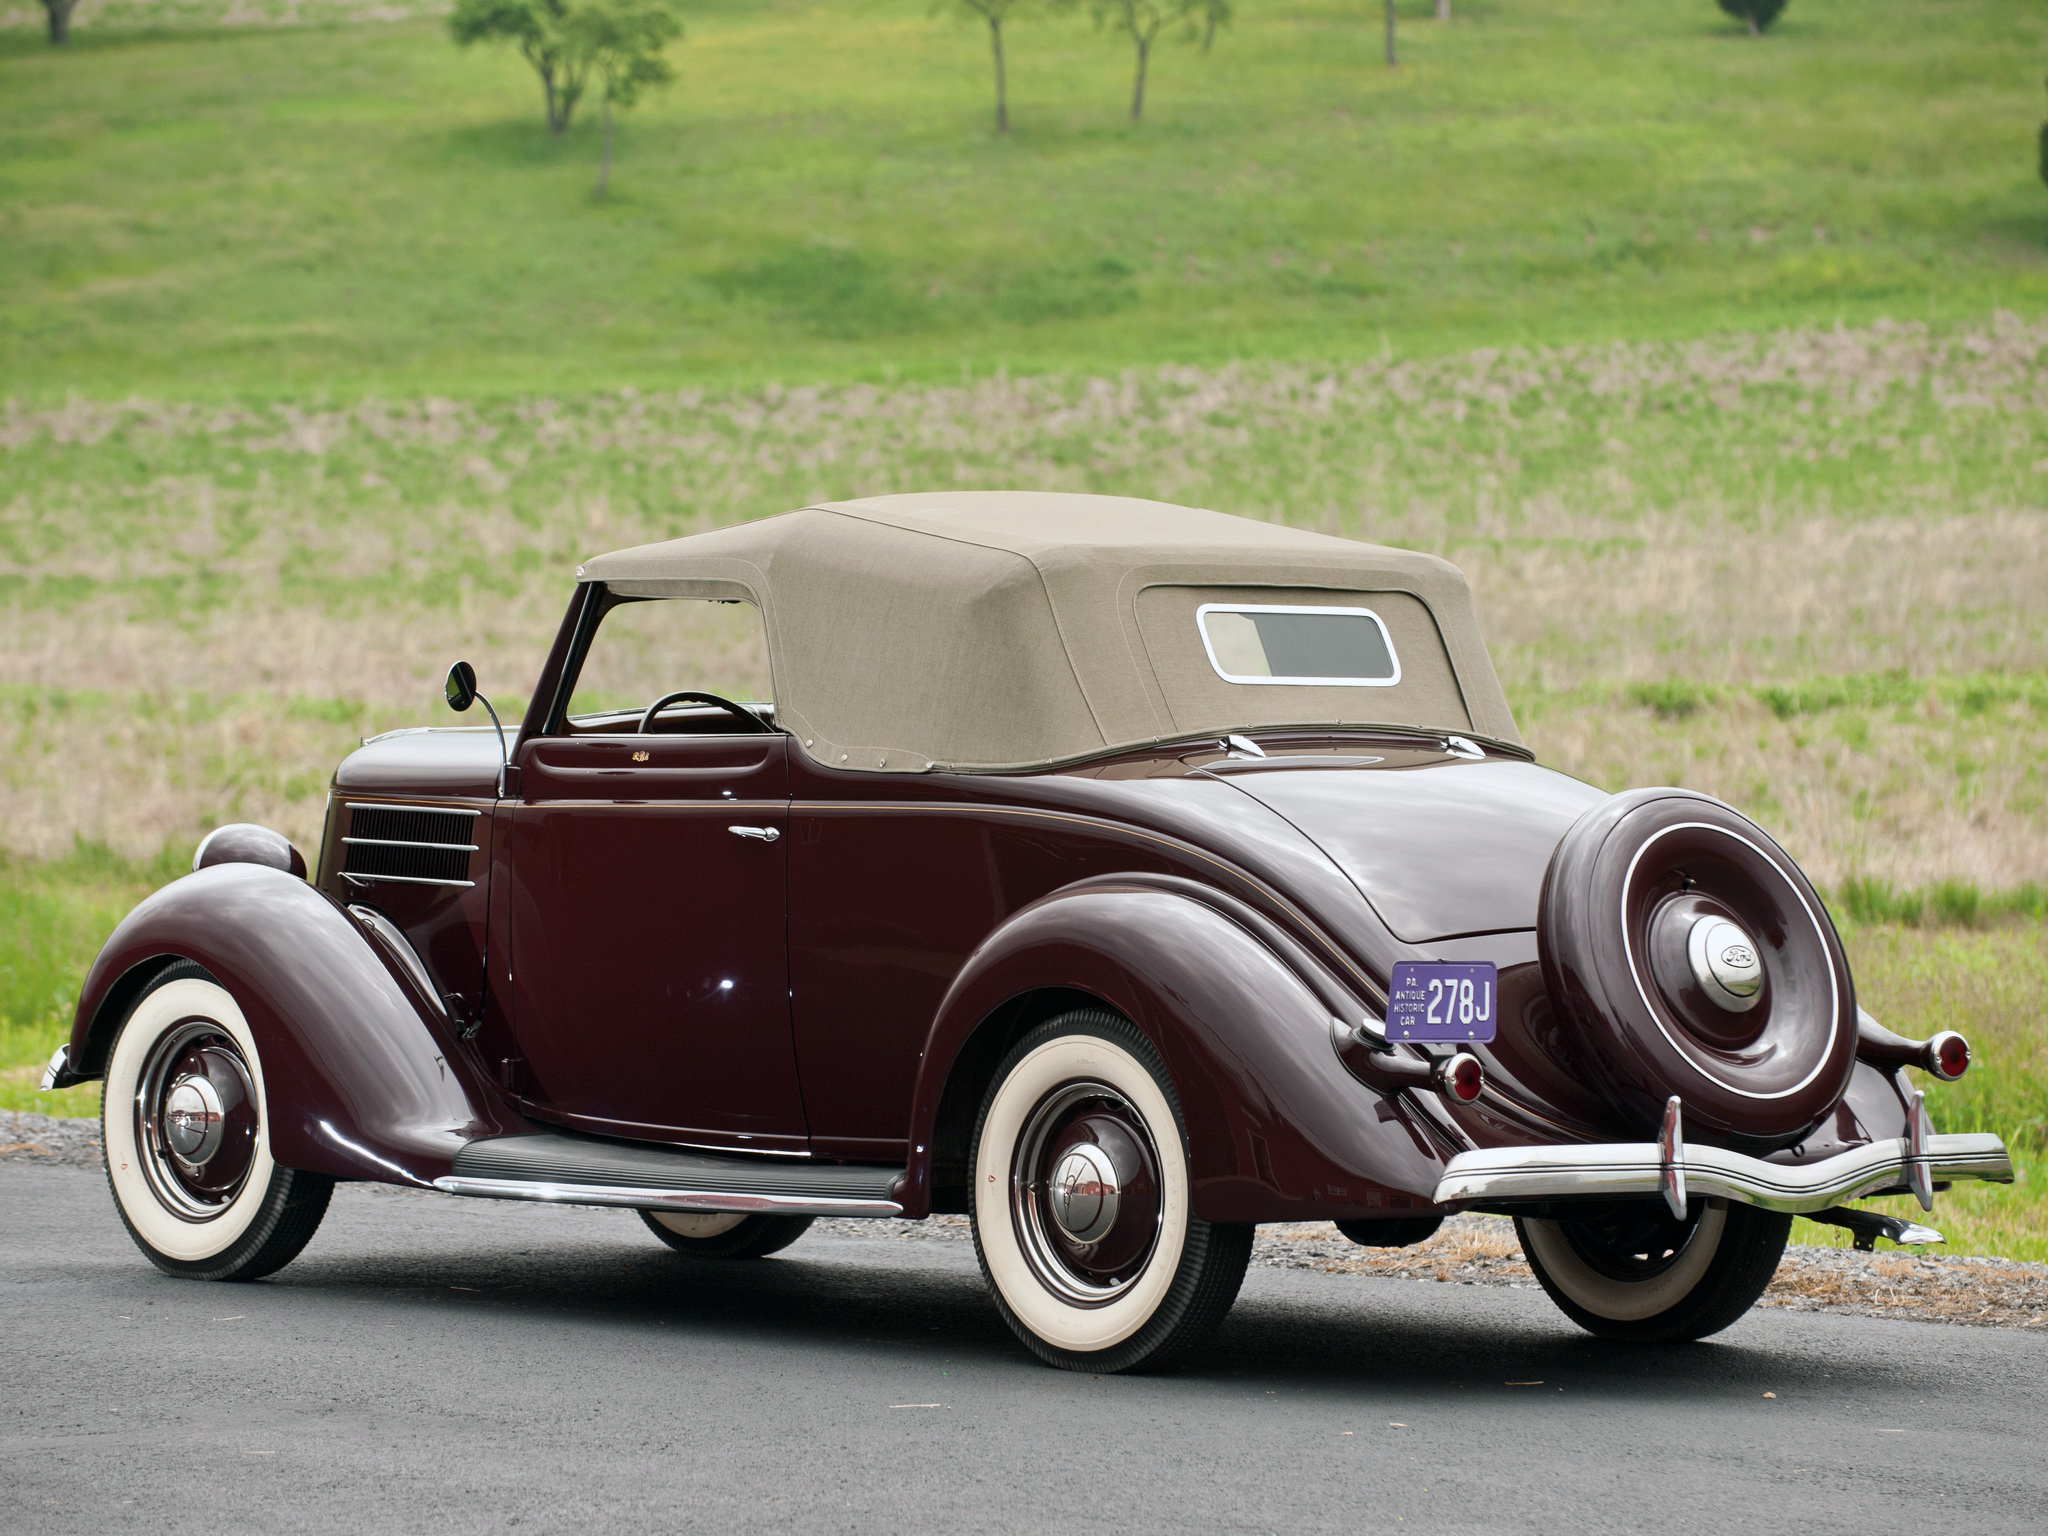 1936 ford v8 deluxe convertible coupe 68 730 retro v 8 fs wallpaper 2048x1536 221219 wallpaperup